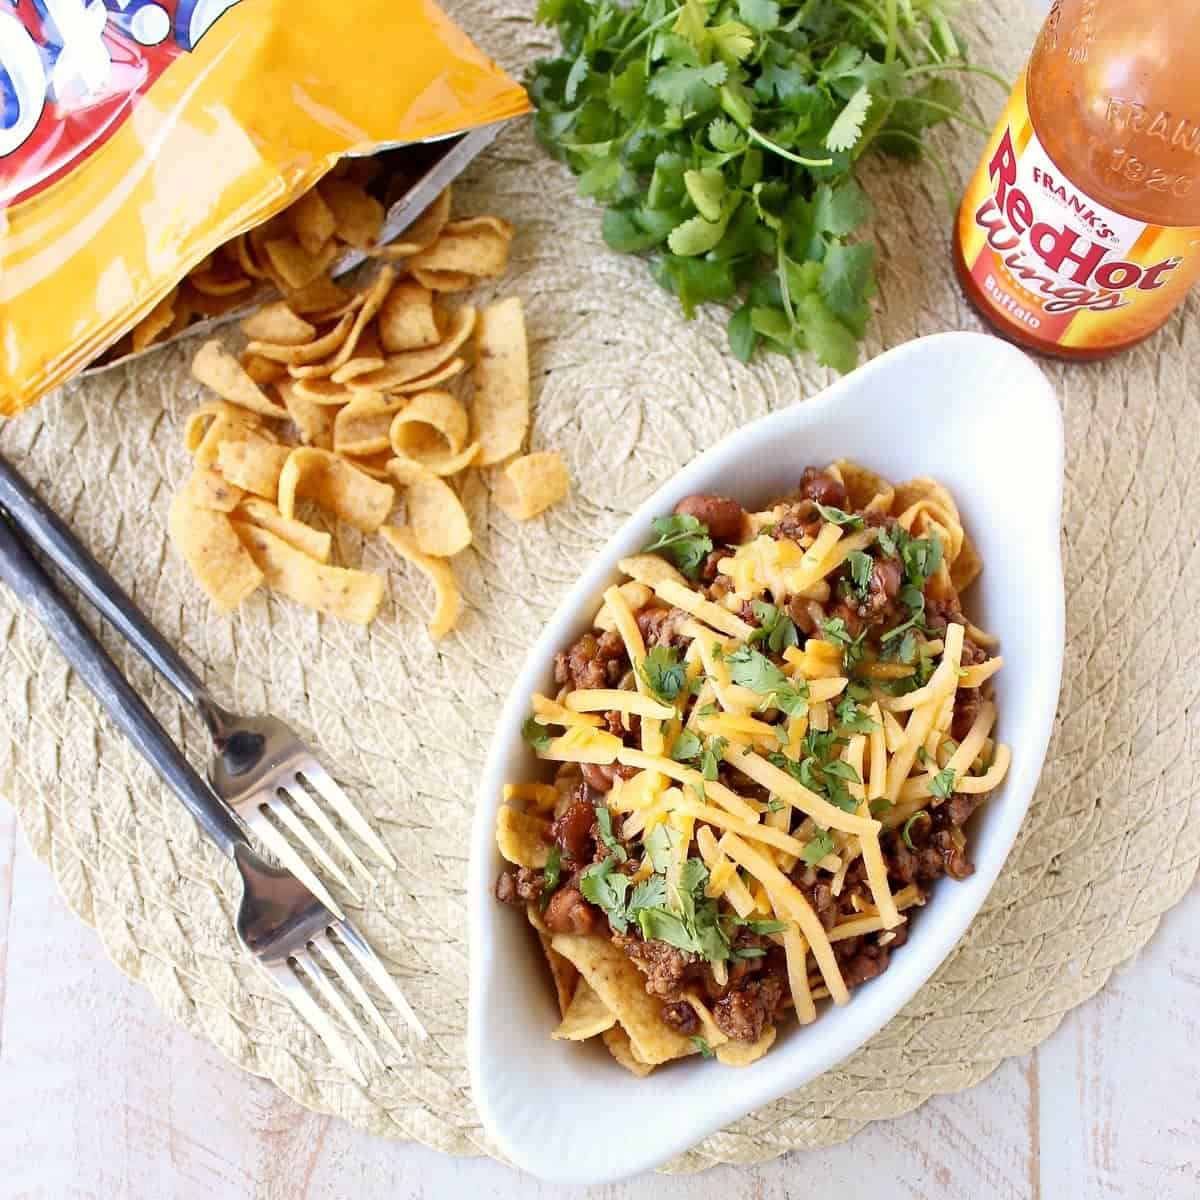 Buffalo Frito Chili Pie